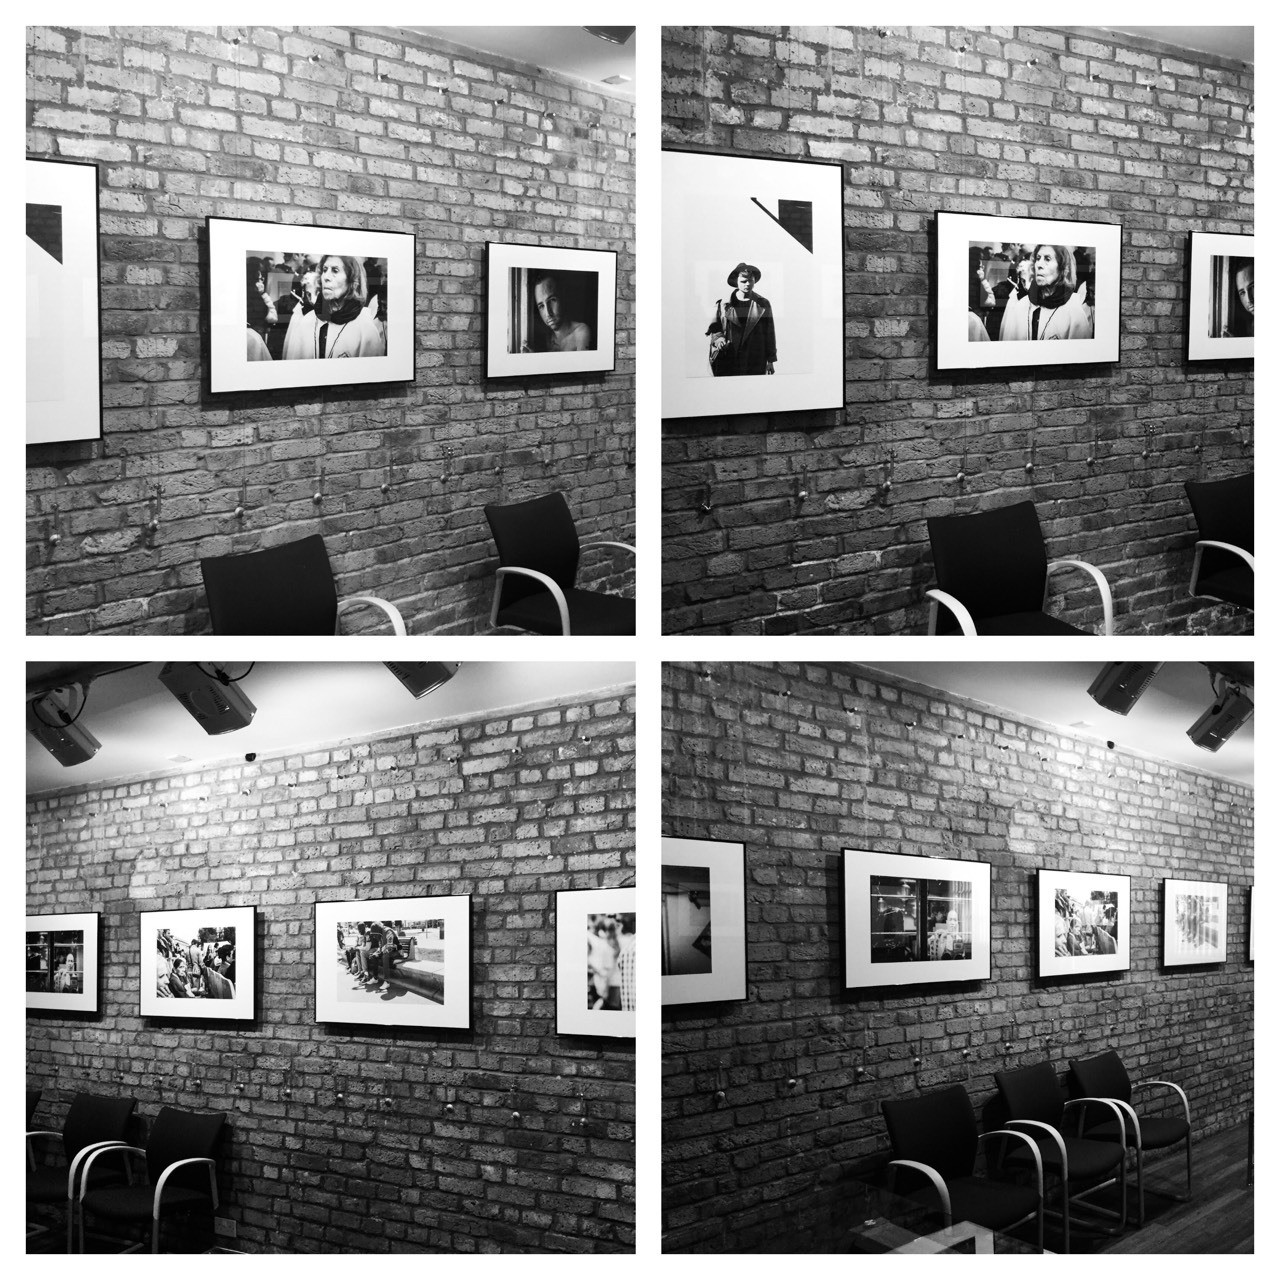 Faces of Streets photo exhibition is now open to the public at London Camera Club.